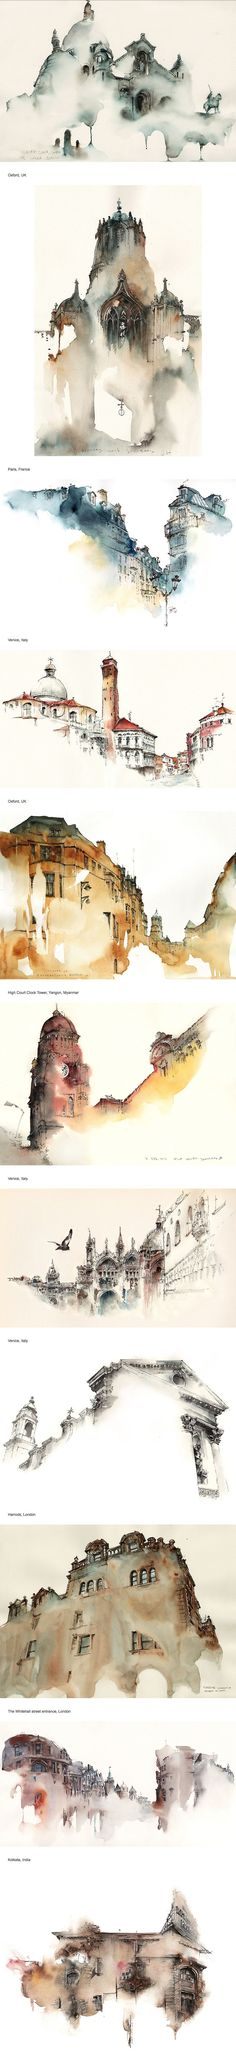 Elusive Architecture in Watercolors of Korean Artist Sunga Park WOW NICE WORK. Elusive Architecture in Watercolors of Korean Artist Sunga Park Art Et Architecture, Watercolor Architecture, Watercolor Landscape, Illustration Art, Illustrations, Watercolor Paintings, Watercolors, Watercolor Sketch, Art Graphique